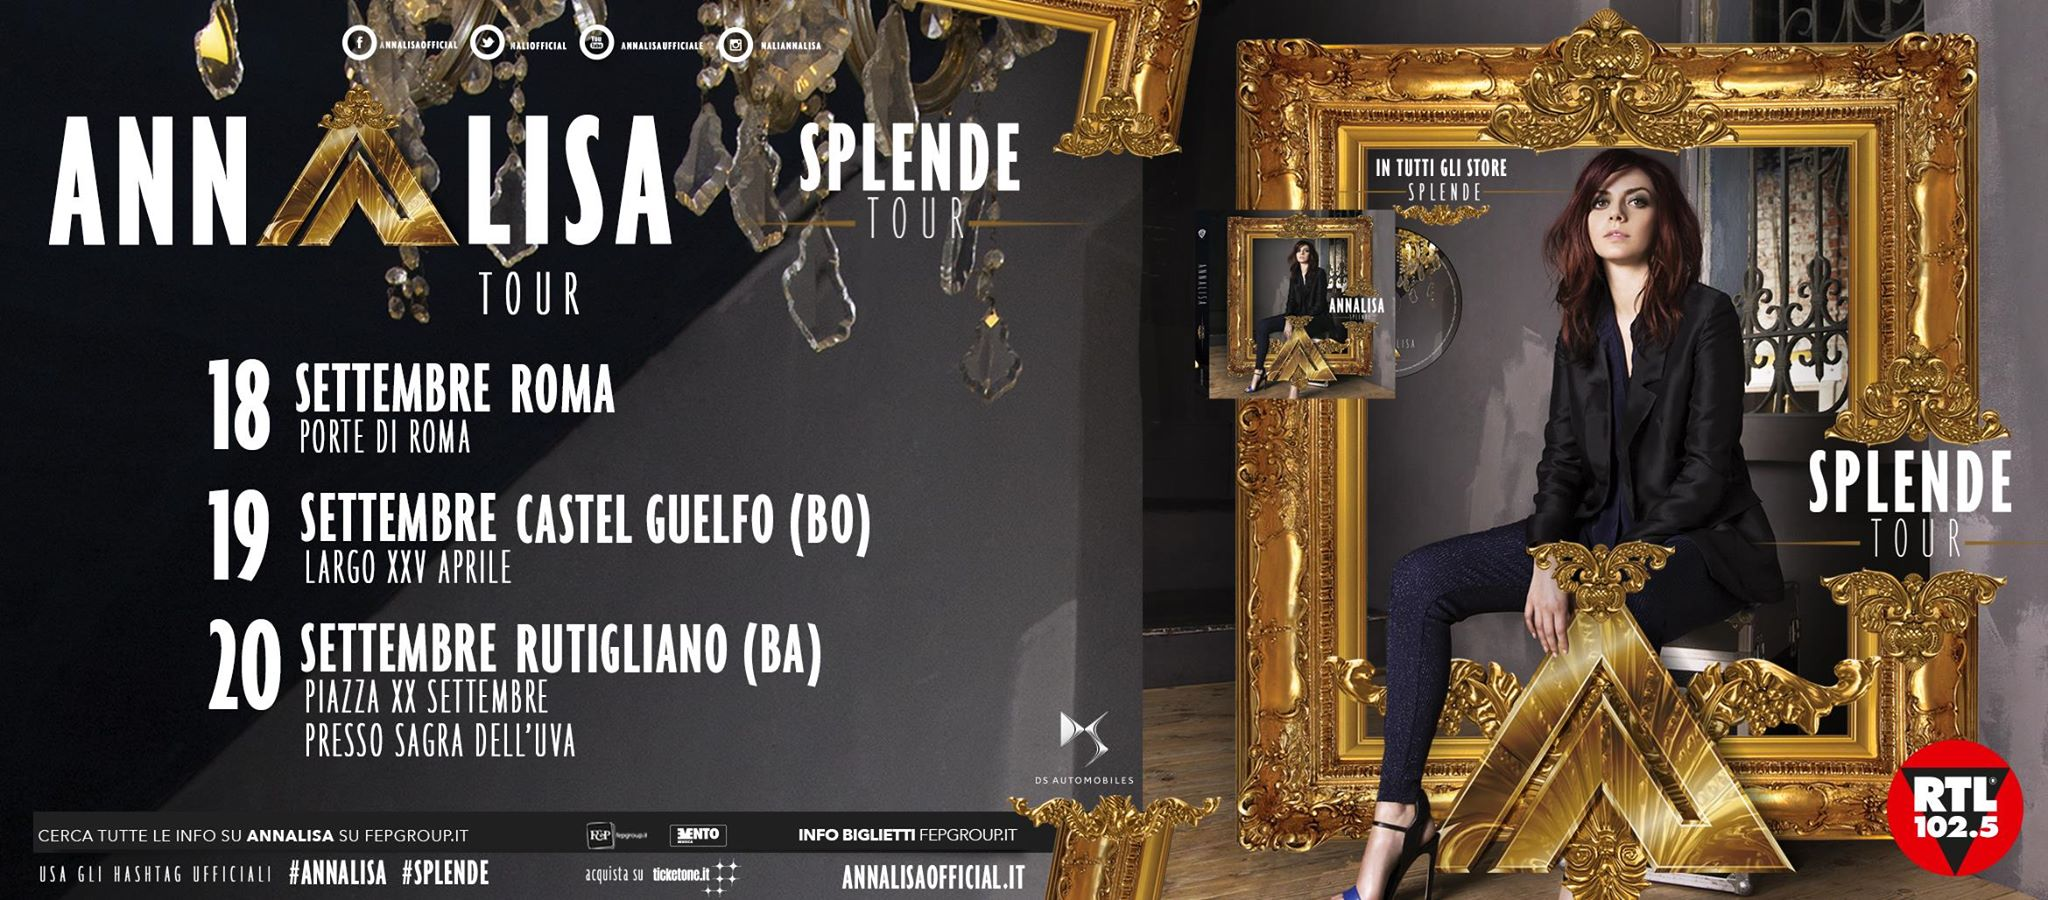 Splende Tour 2015 - Annalisa